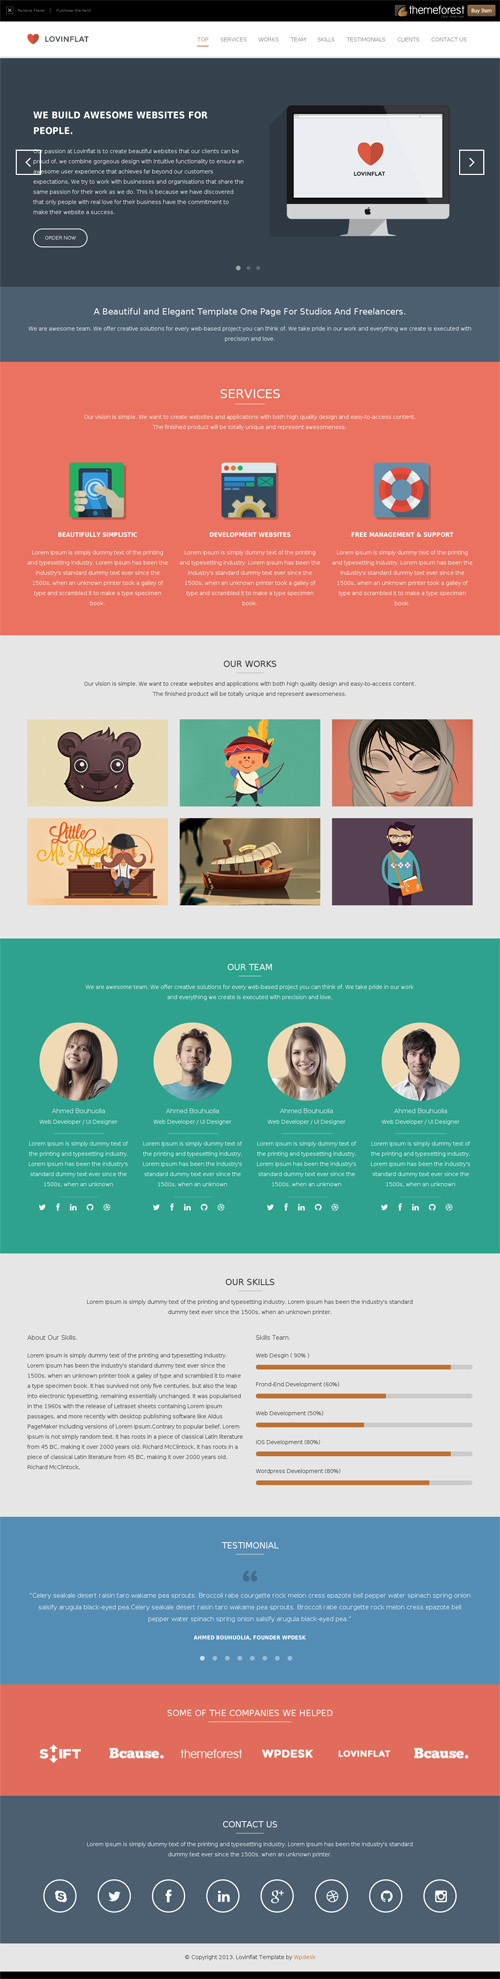 Motion single page PSD web template for free by begha on DeviantArt